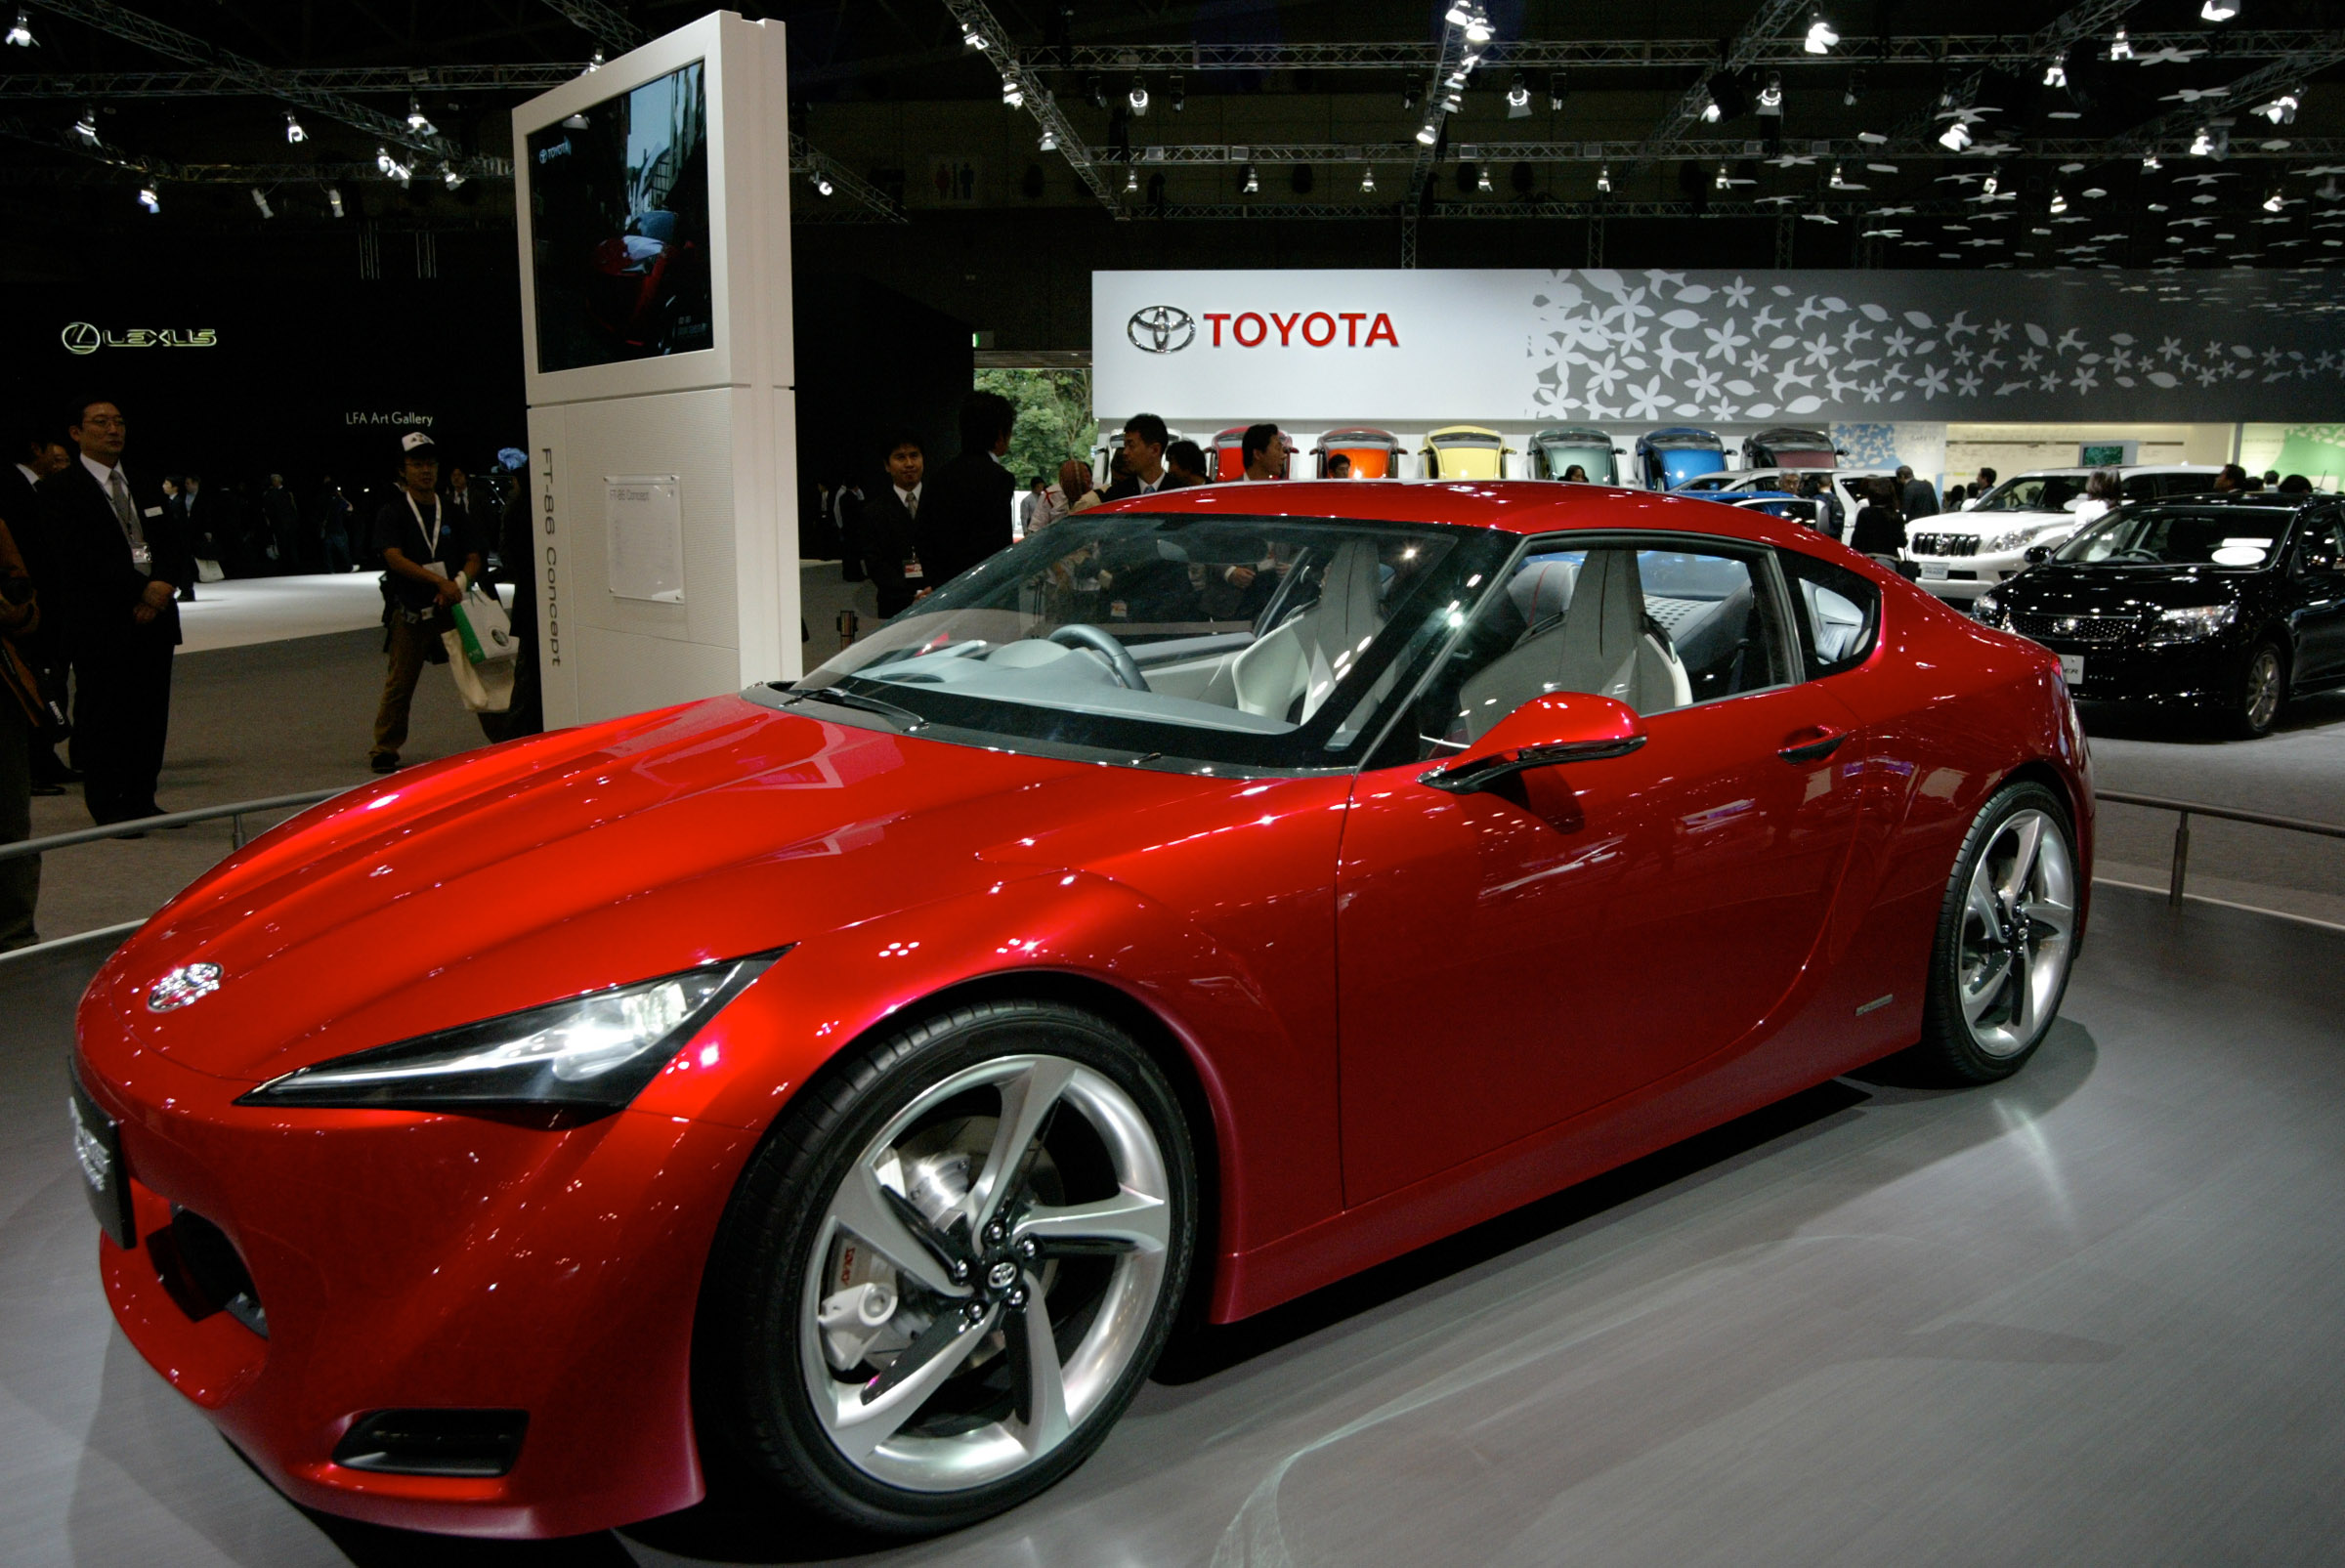 Toyota Ft 86 Concept Unveiled At 41st Tokyo Motor Show